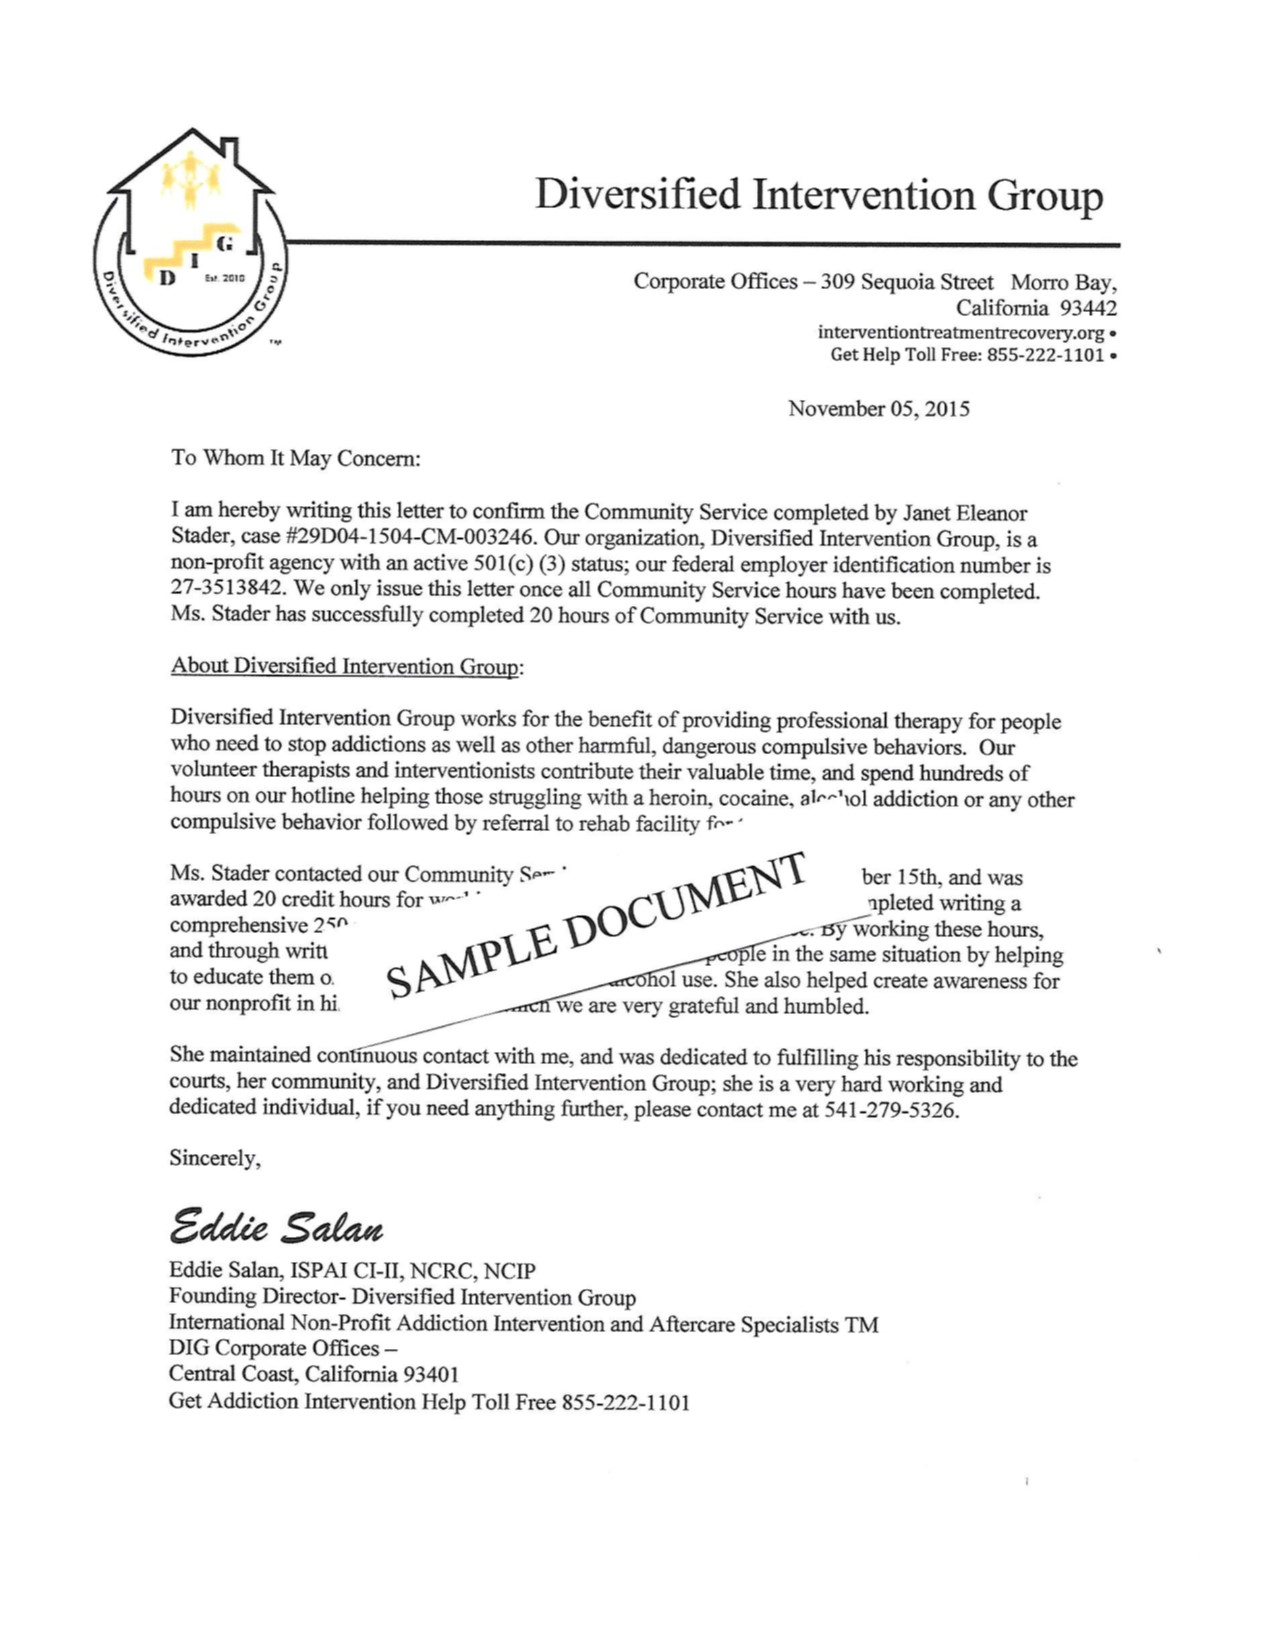 Sample Community Service Letter 22+ Download Free Documents in